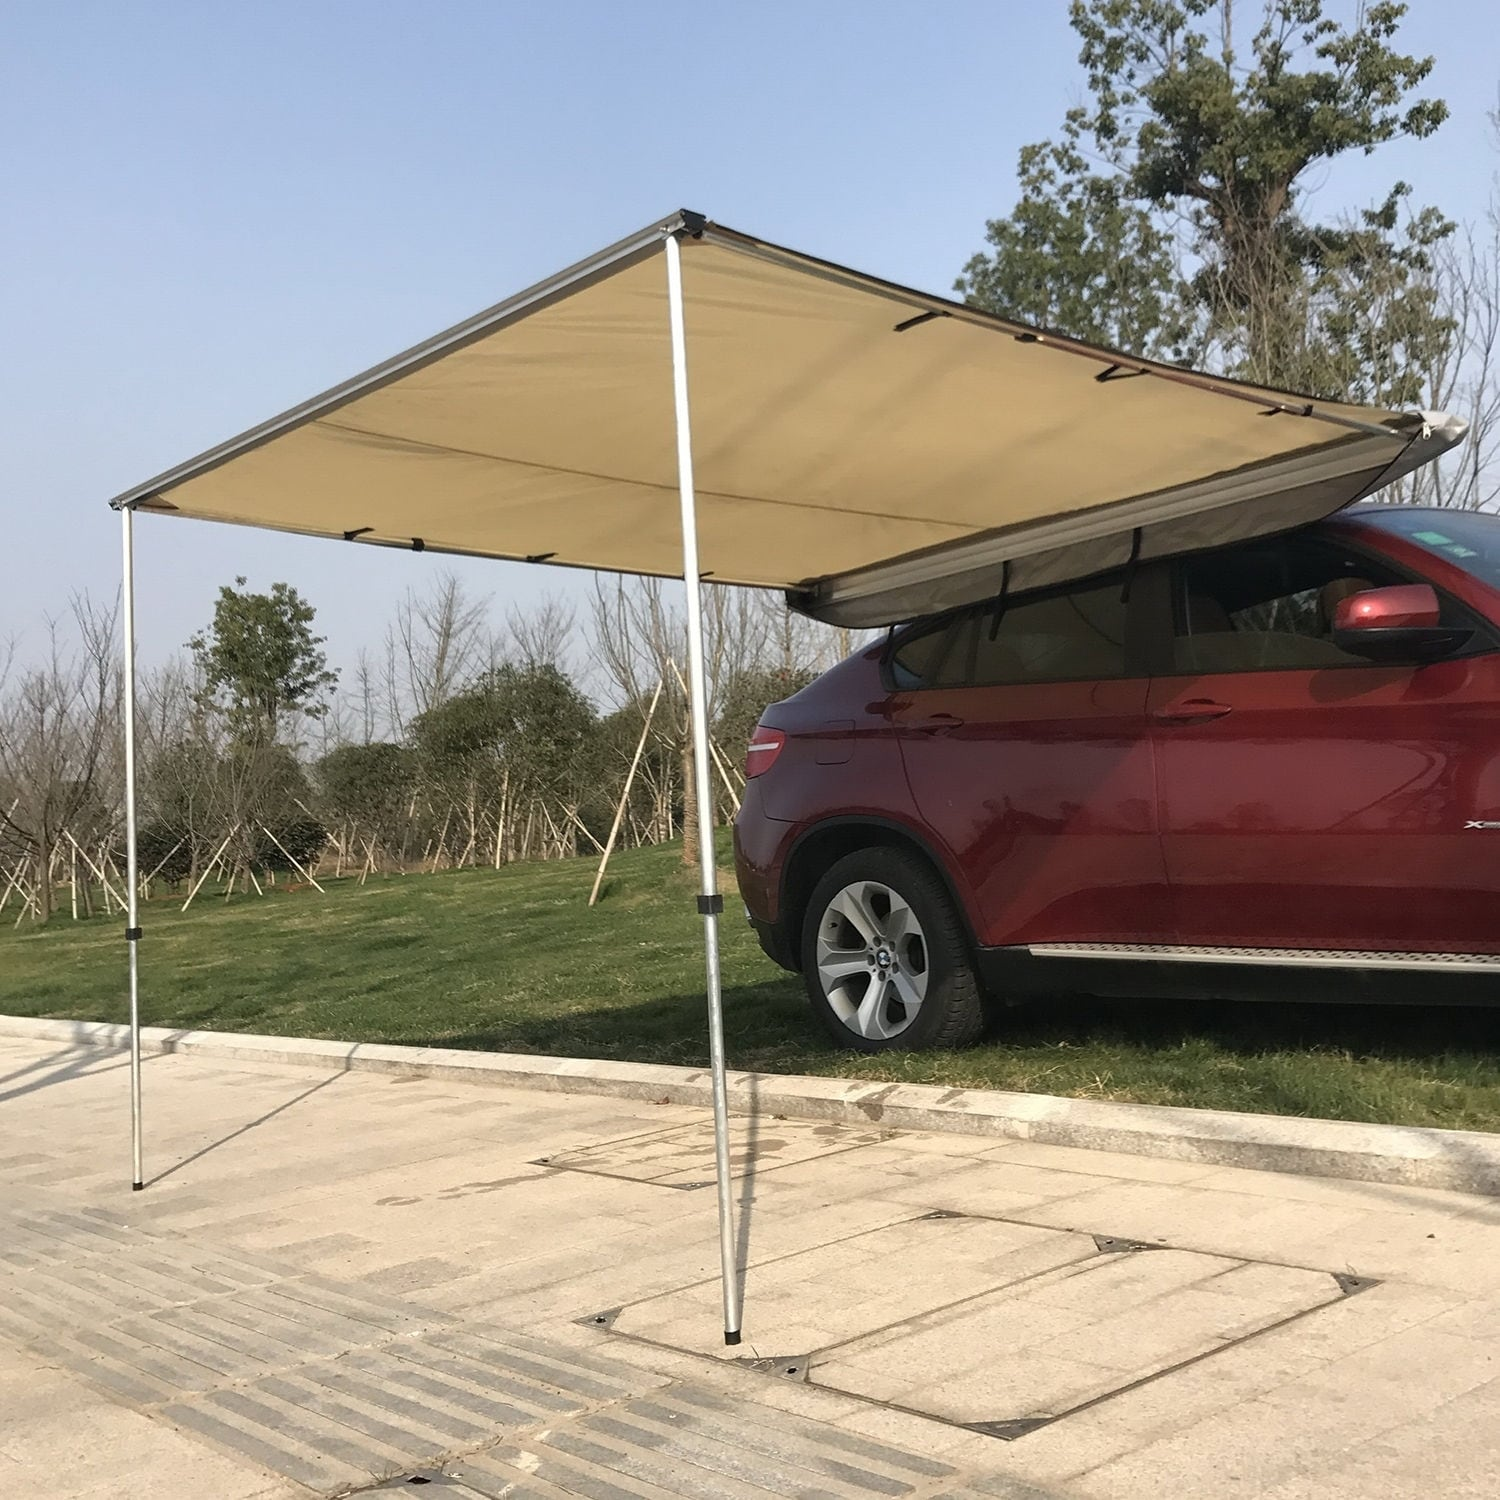 patio dci outsunny m x awning garden shade cover lawn co canopy door aosom green uk shelter